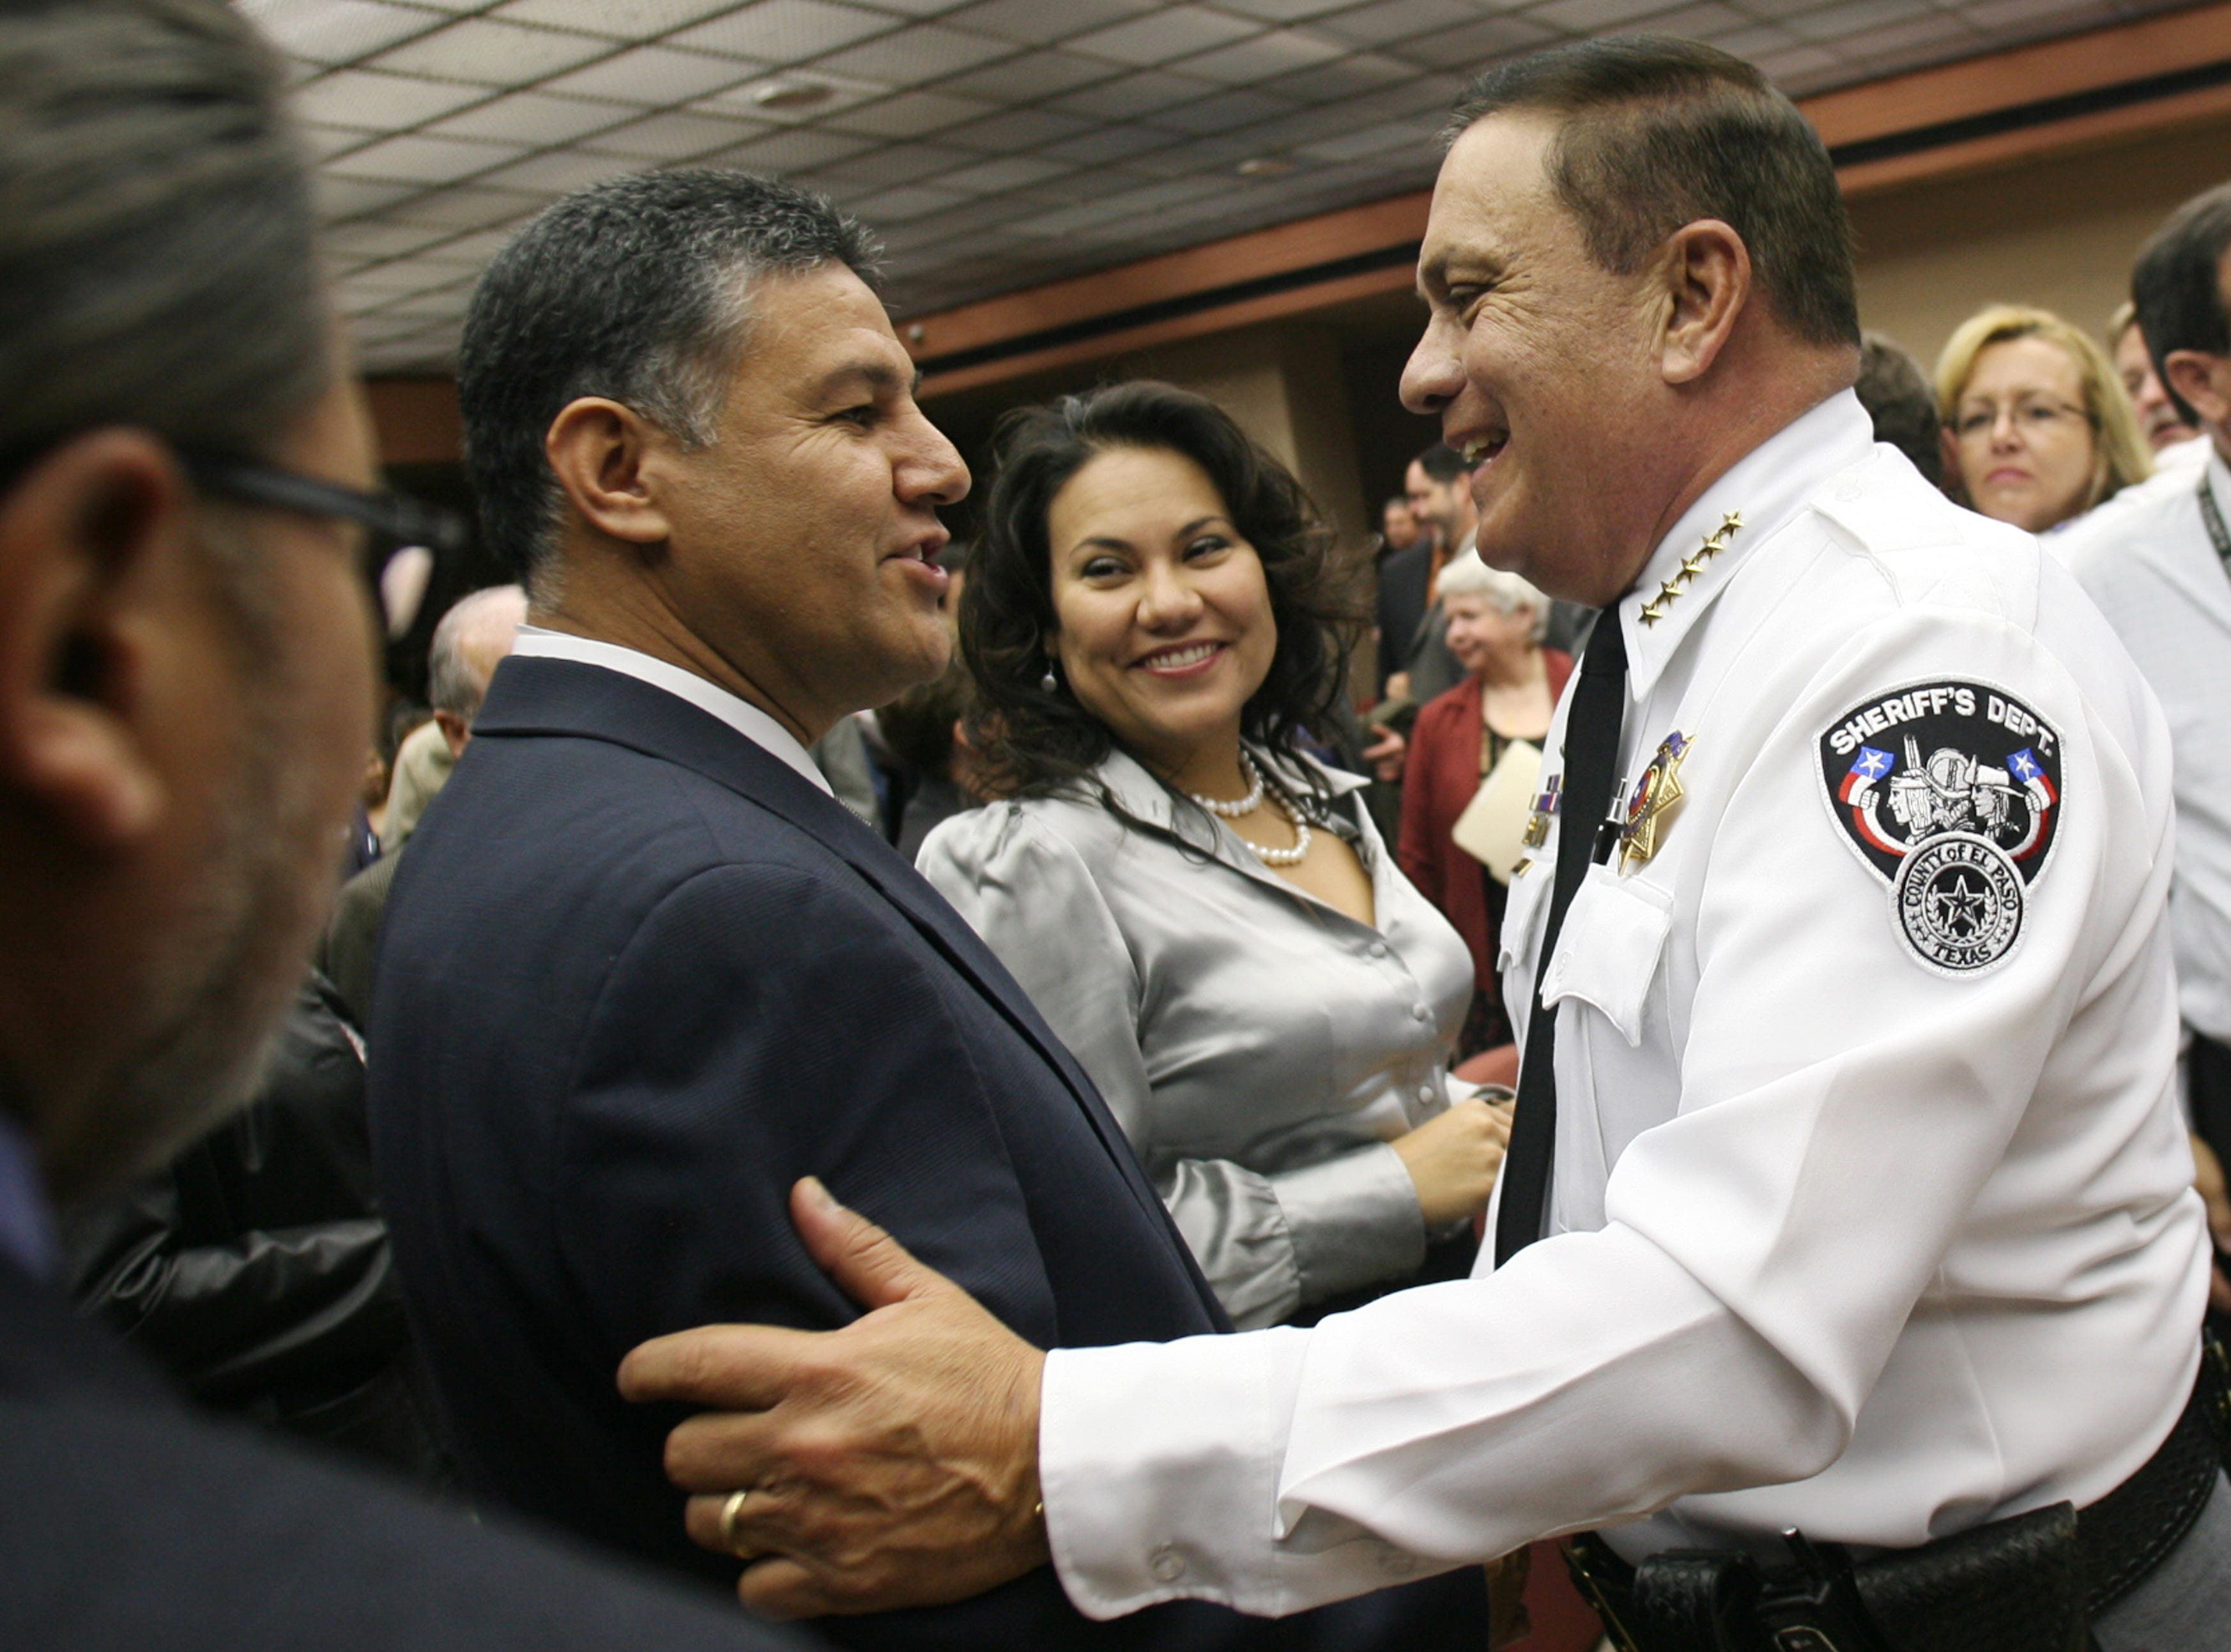 Apodaca takes charge New El Paso County Sheriff Jimmy Apodaca, right, received congratulations Tuesday from County Commissioners Luis SariÒana and County Judge Veronica Escobar after Apodacaís swearing-in ceremony at the County Commissioners Court. Apodaca will finish the term of the late Leo Samaniego.